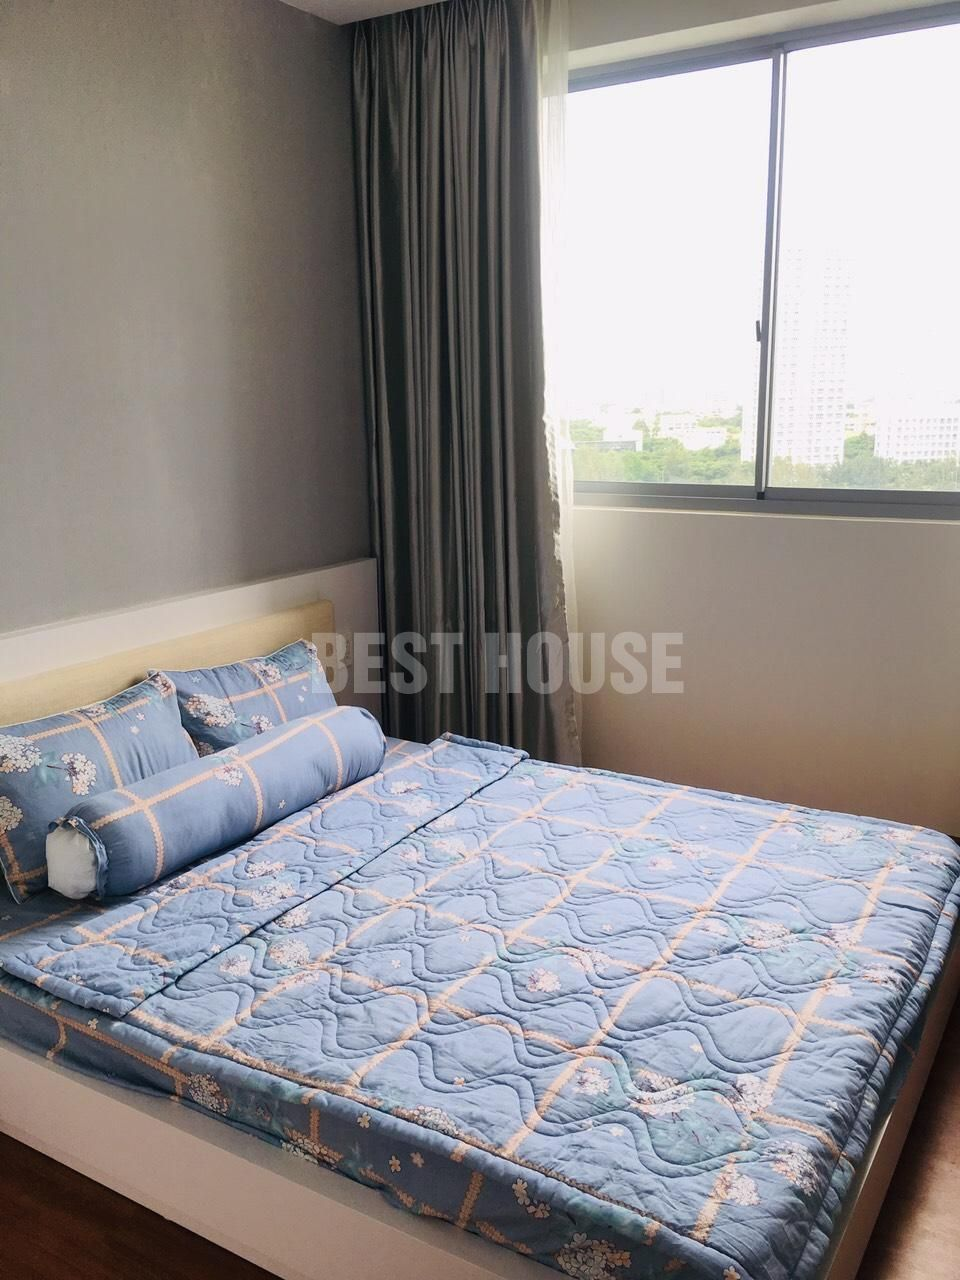 green-valley-apartment-for-rent-in-phu-my-hung-d-7